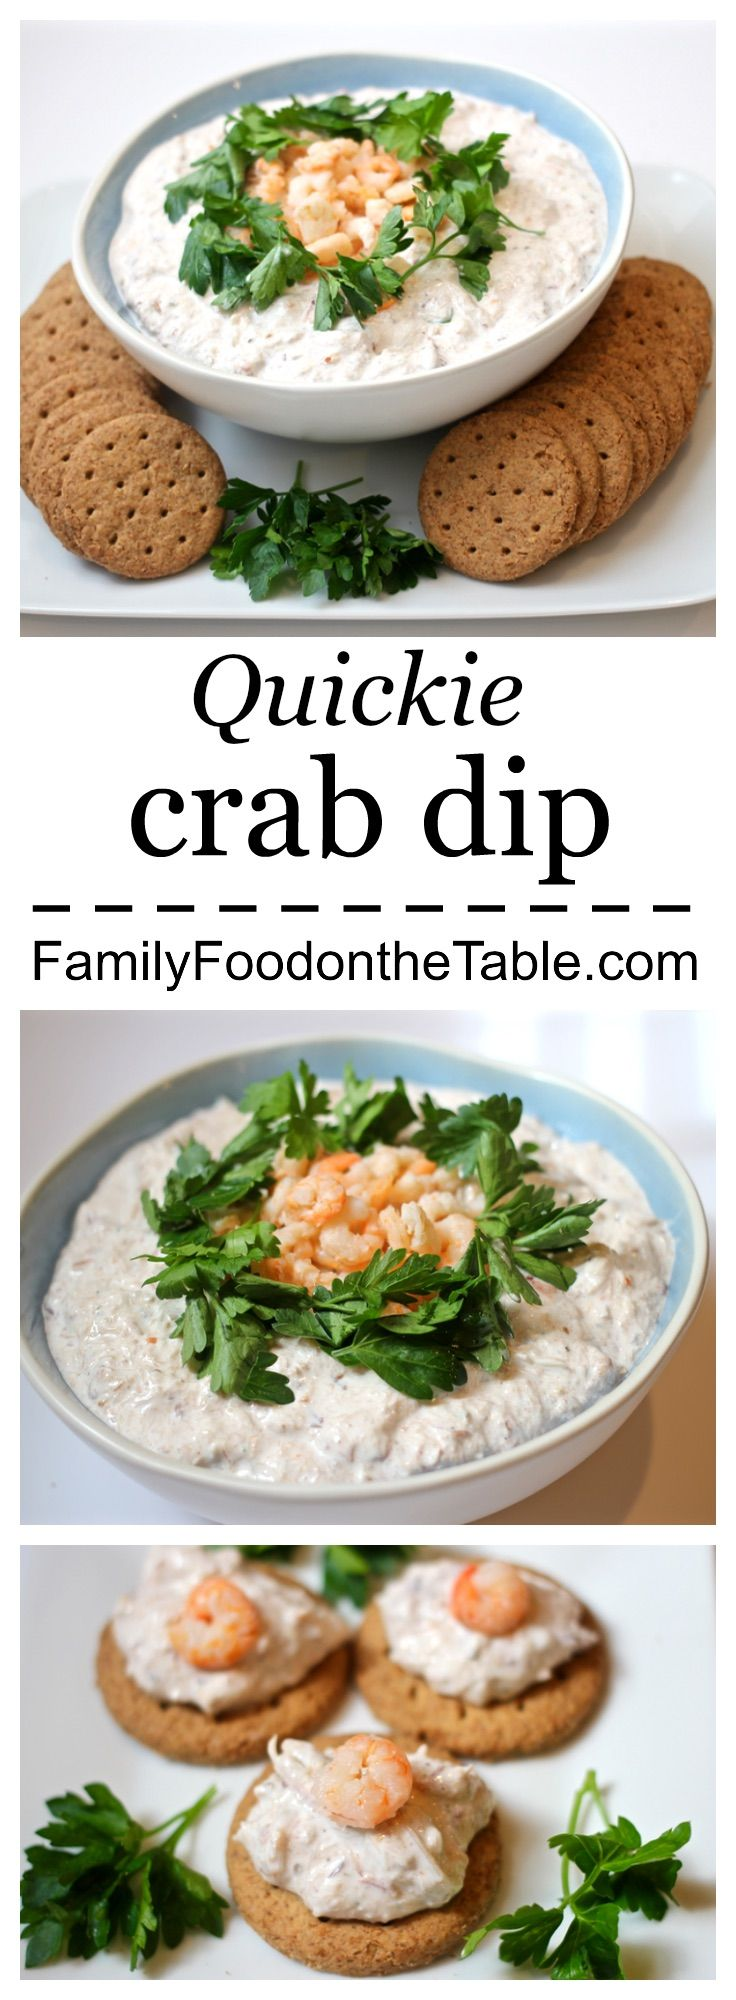 An easy, fast 3-ingredient crab dip appetizer that tastes fancy and delicious!